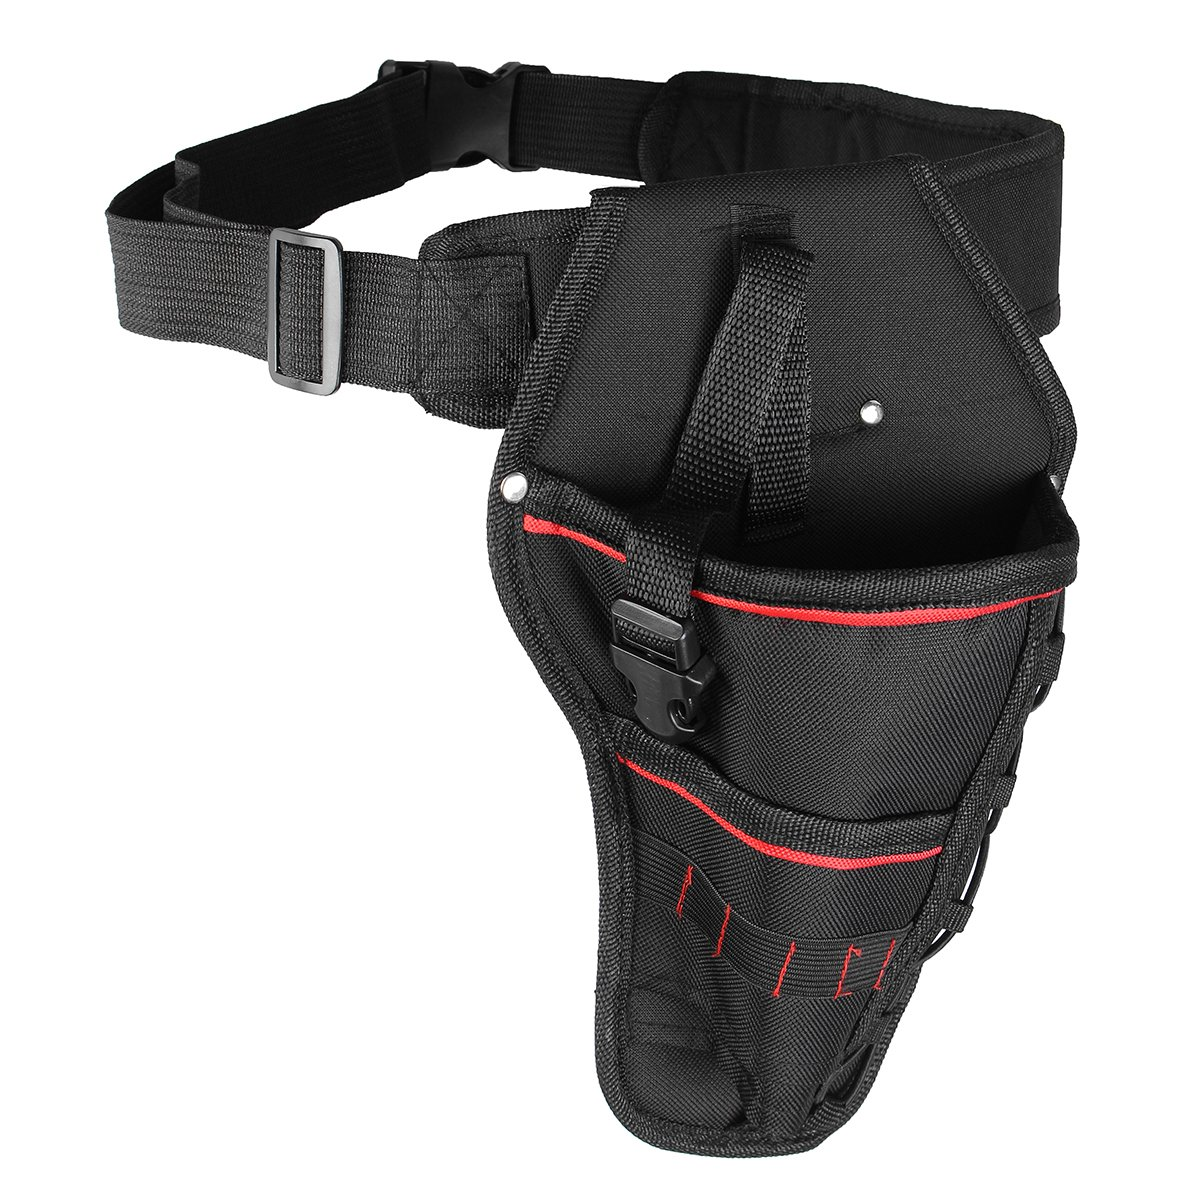 Tool Organizers Cordless Electronic Drill Holster Tool Belt Pouch Adjustable Belt Storage Bag